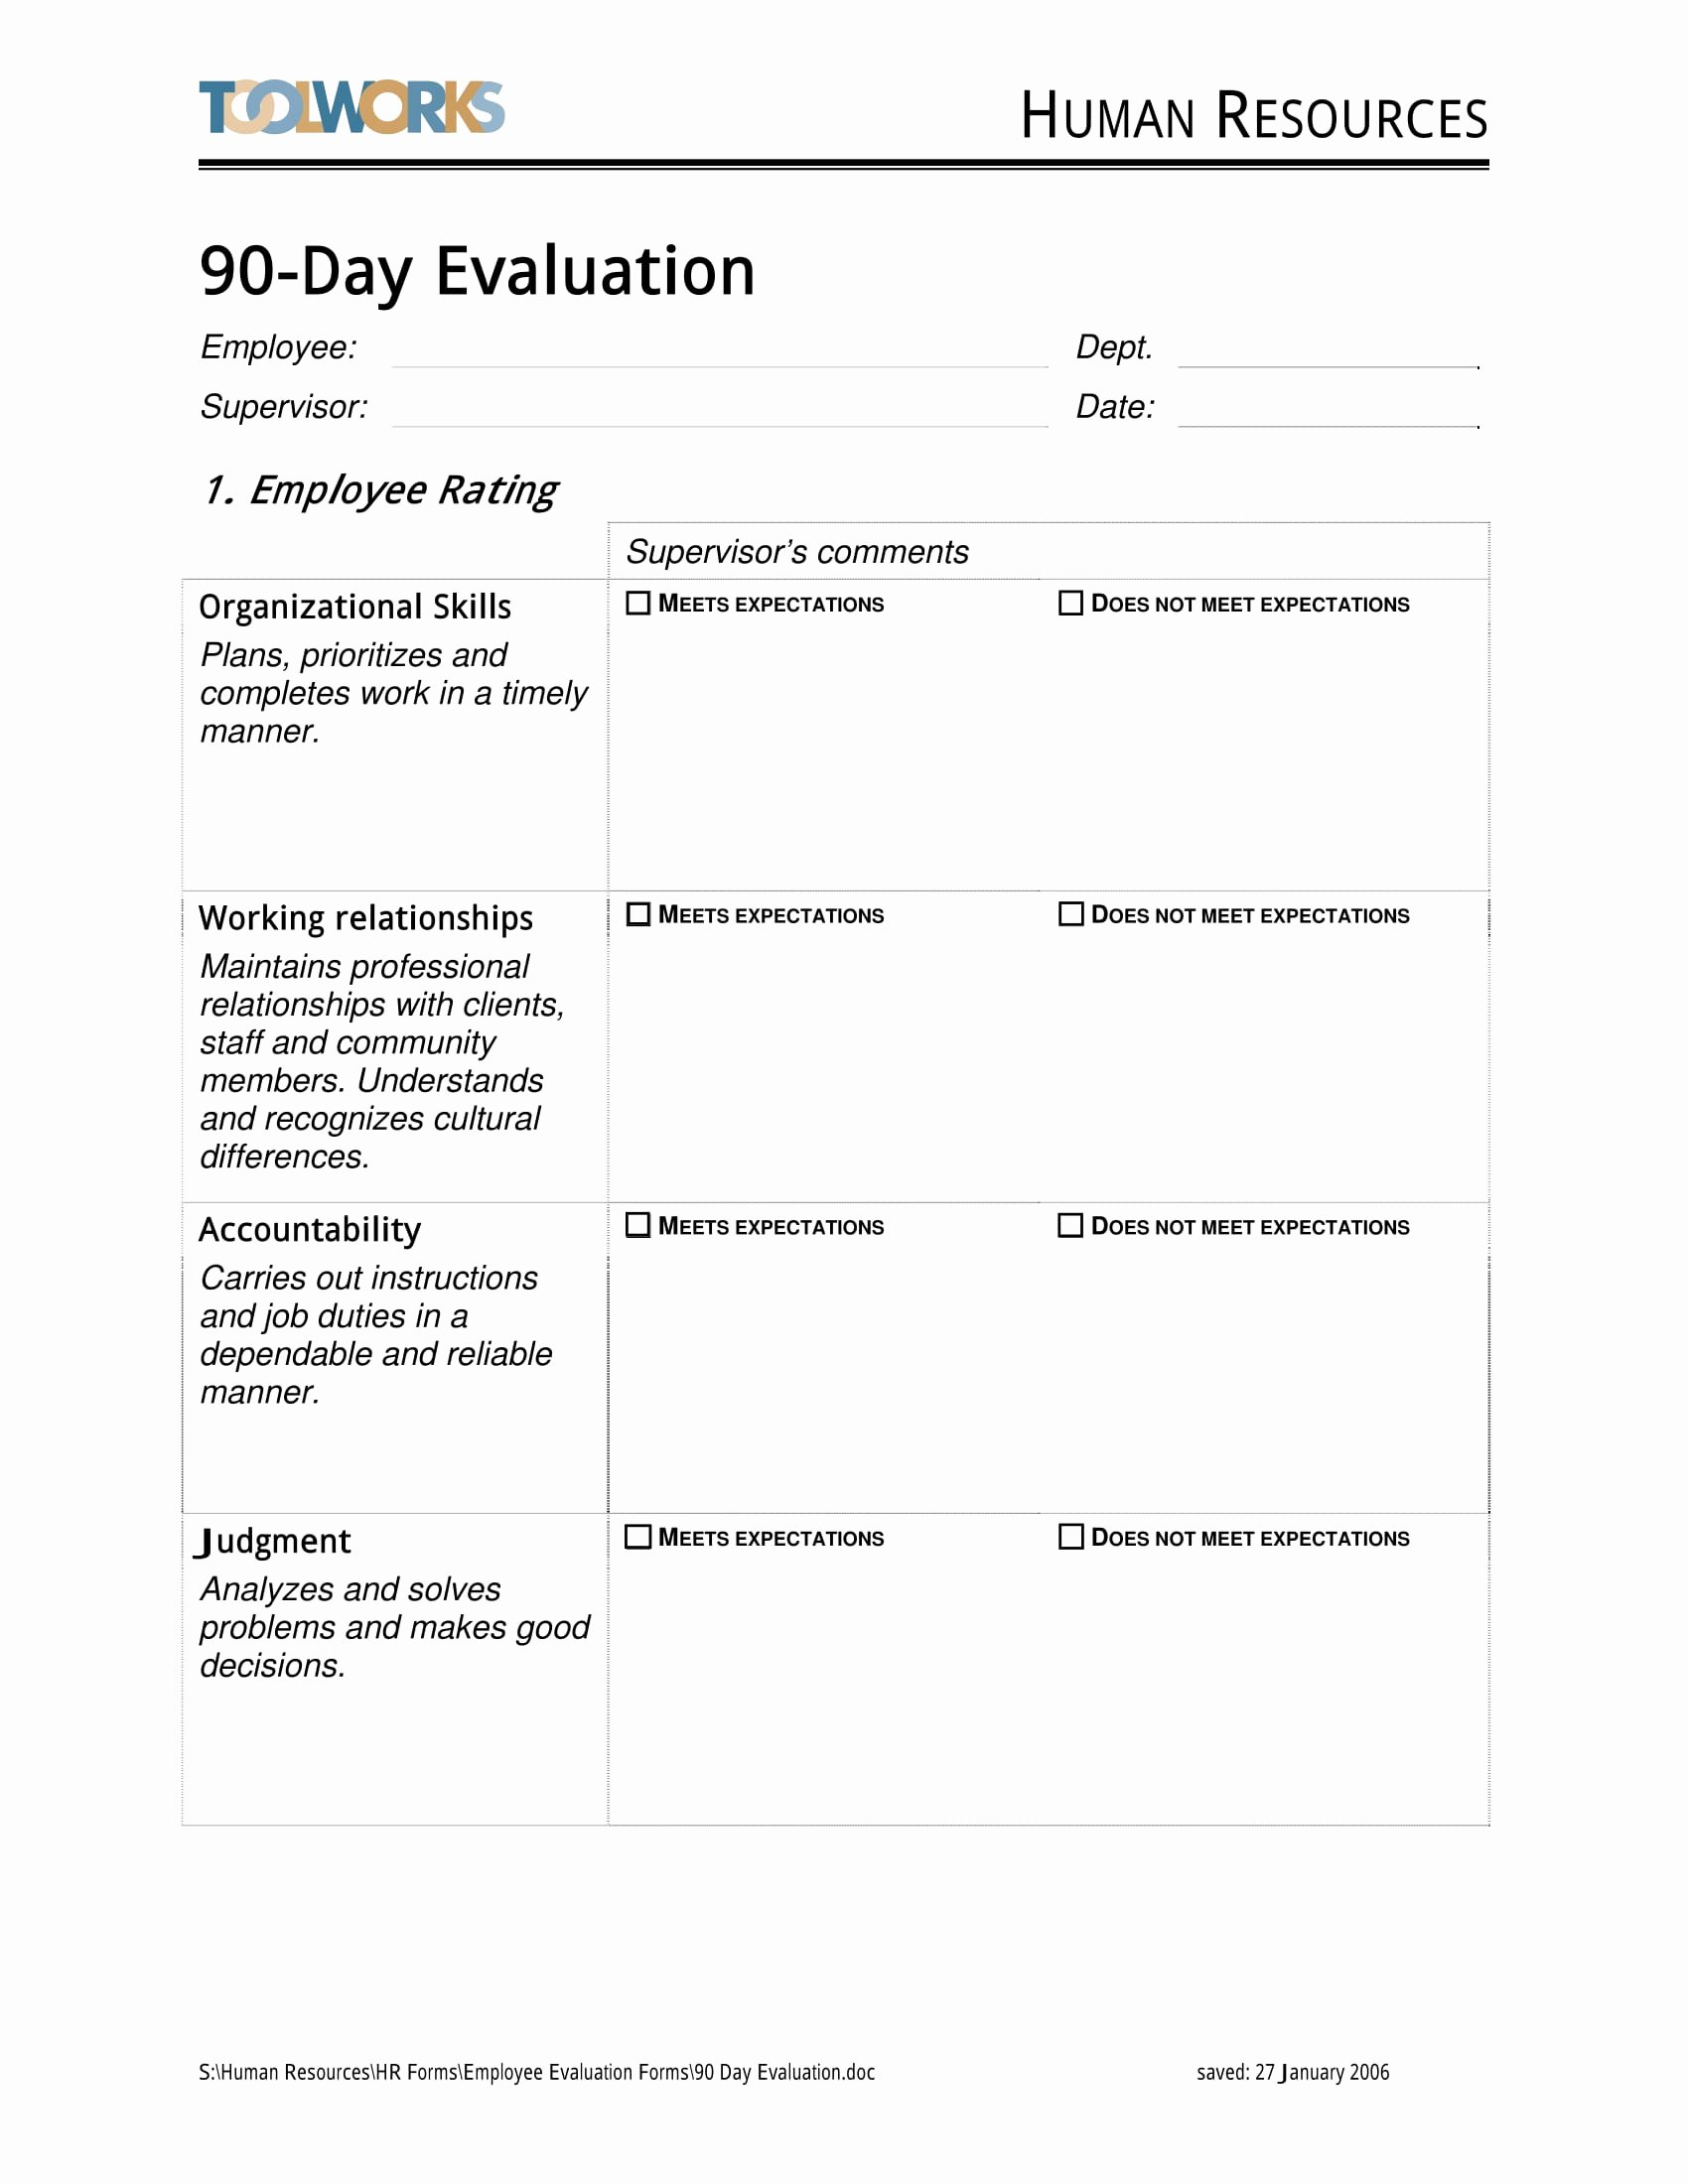 90 Day Review Template Inspirational 14 90 Day Review forms Free Word Pdf format Download